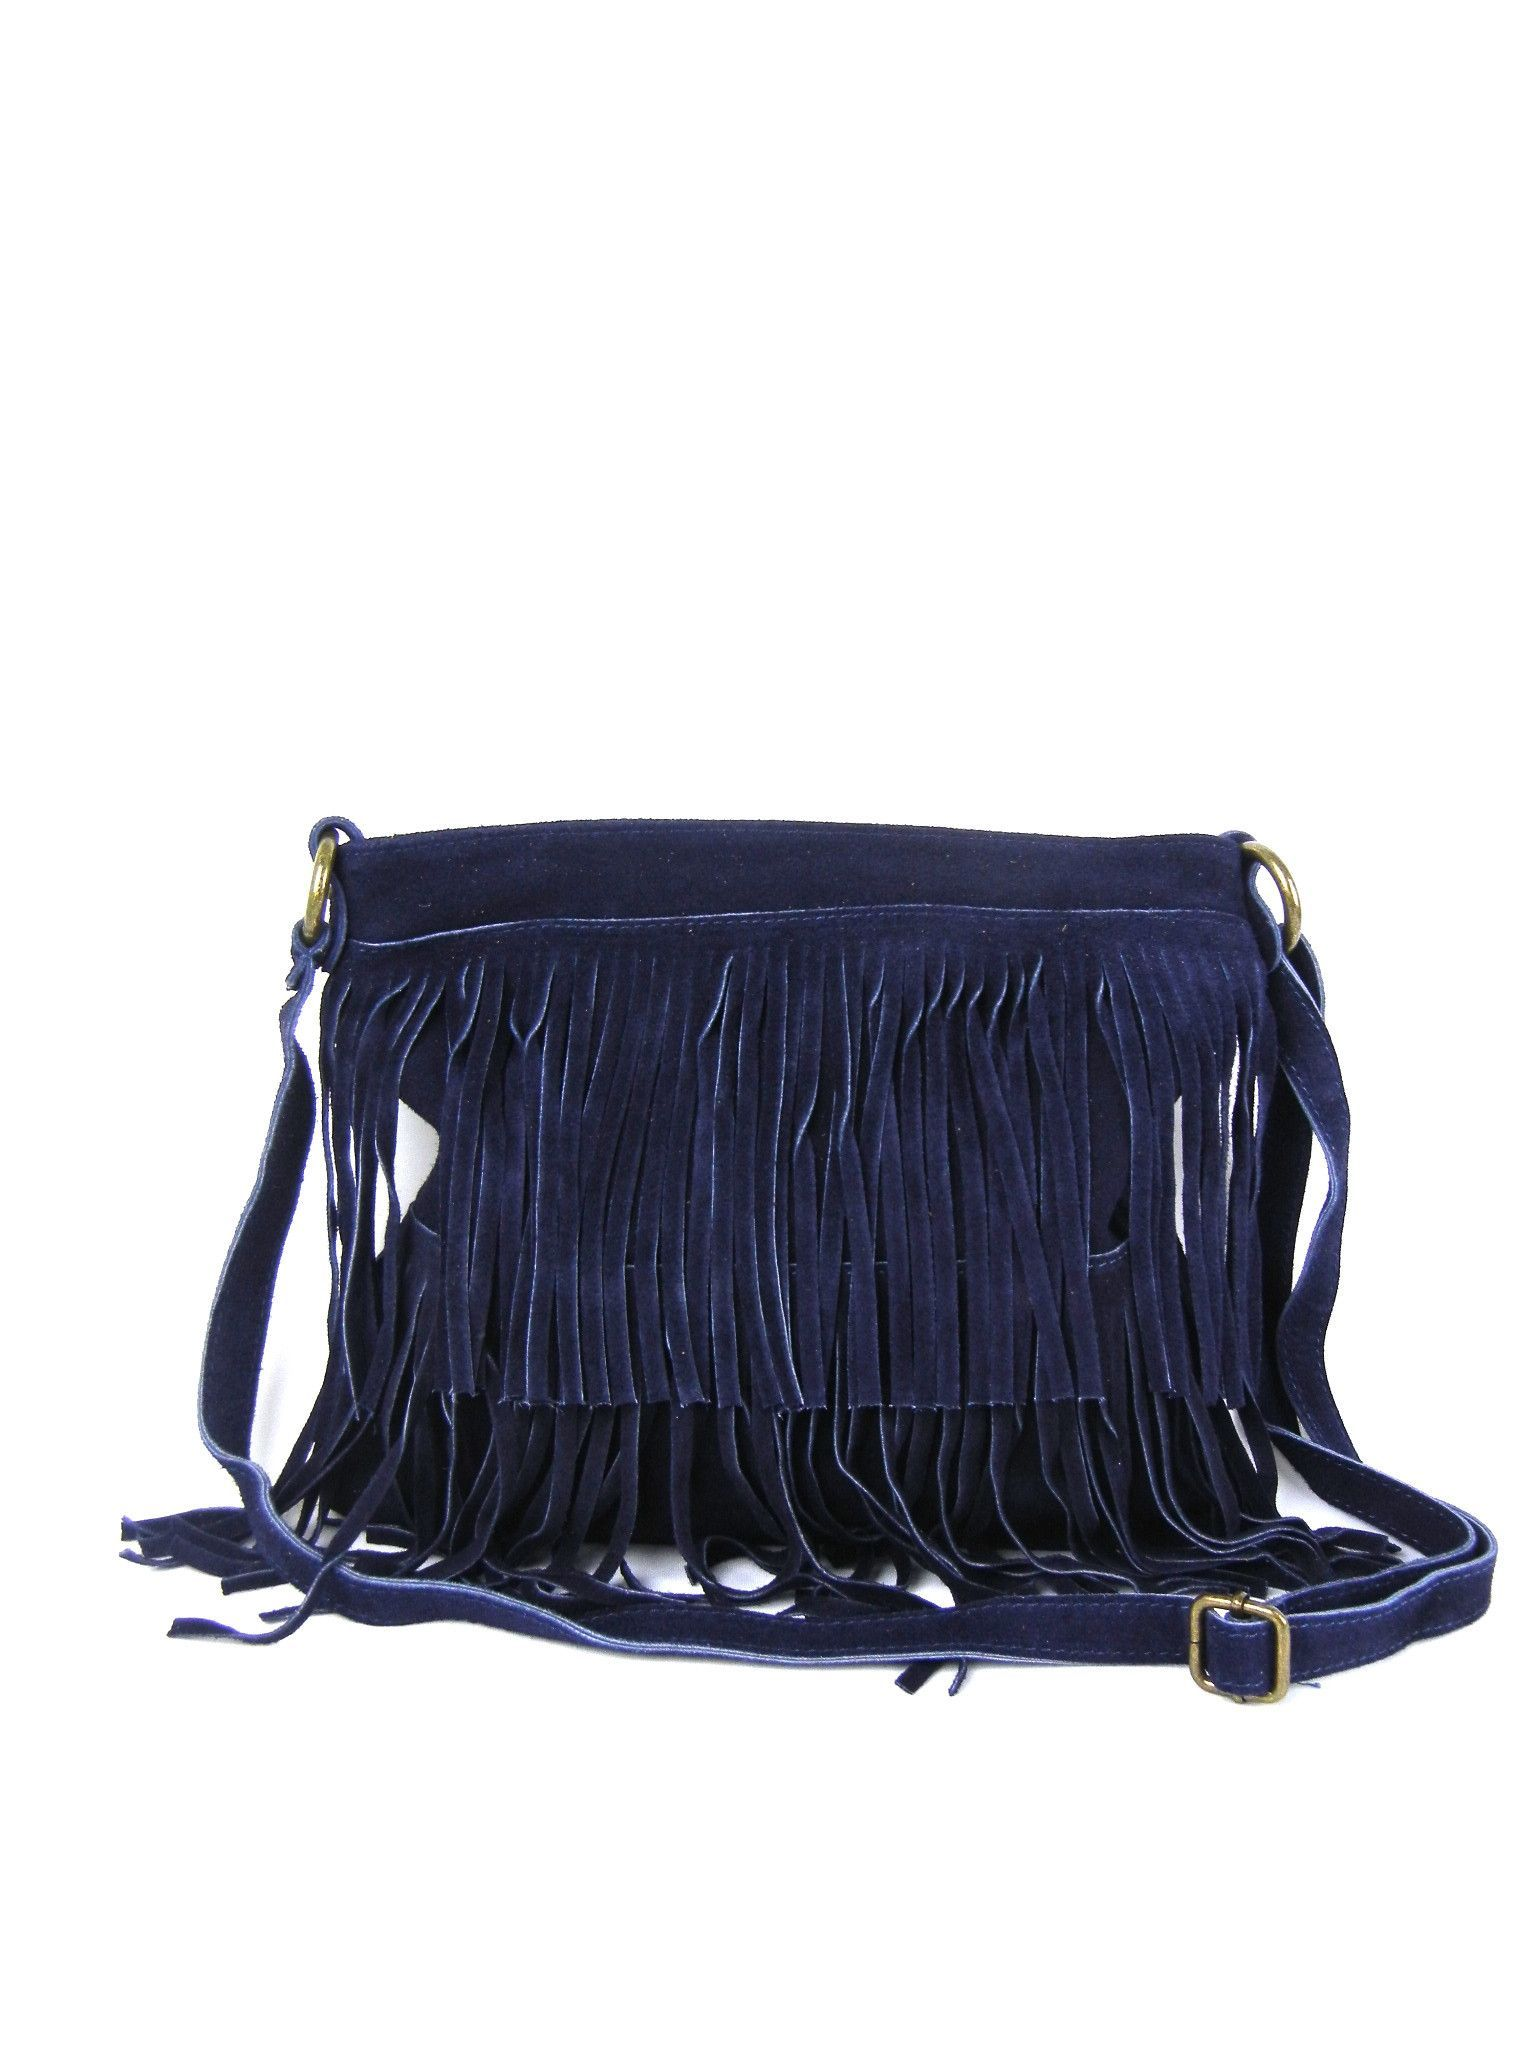 67940fc5d14 Tiered Suede Fringe Handbag Crossbody - More Colors. Find this Pin and more  on Purses ...